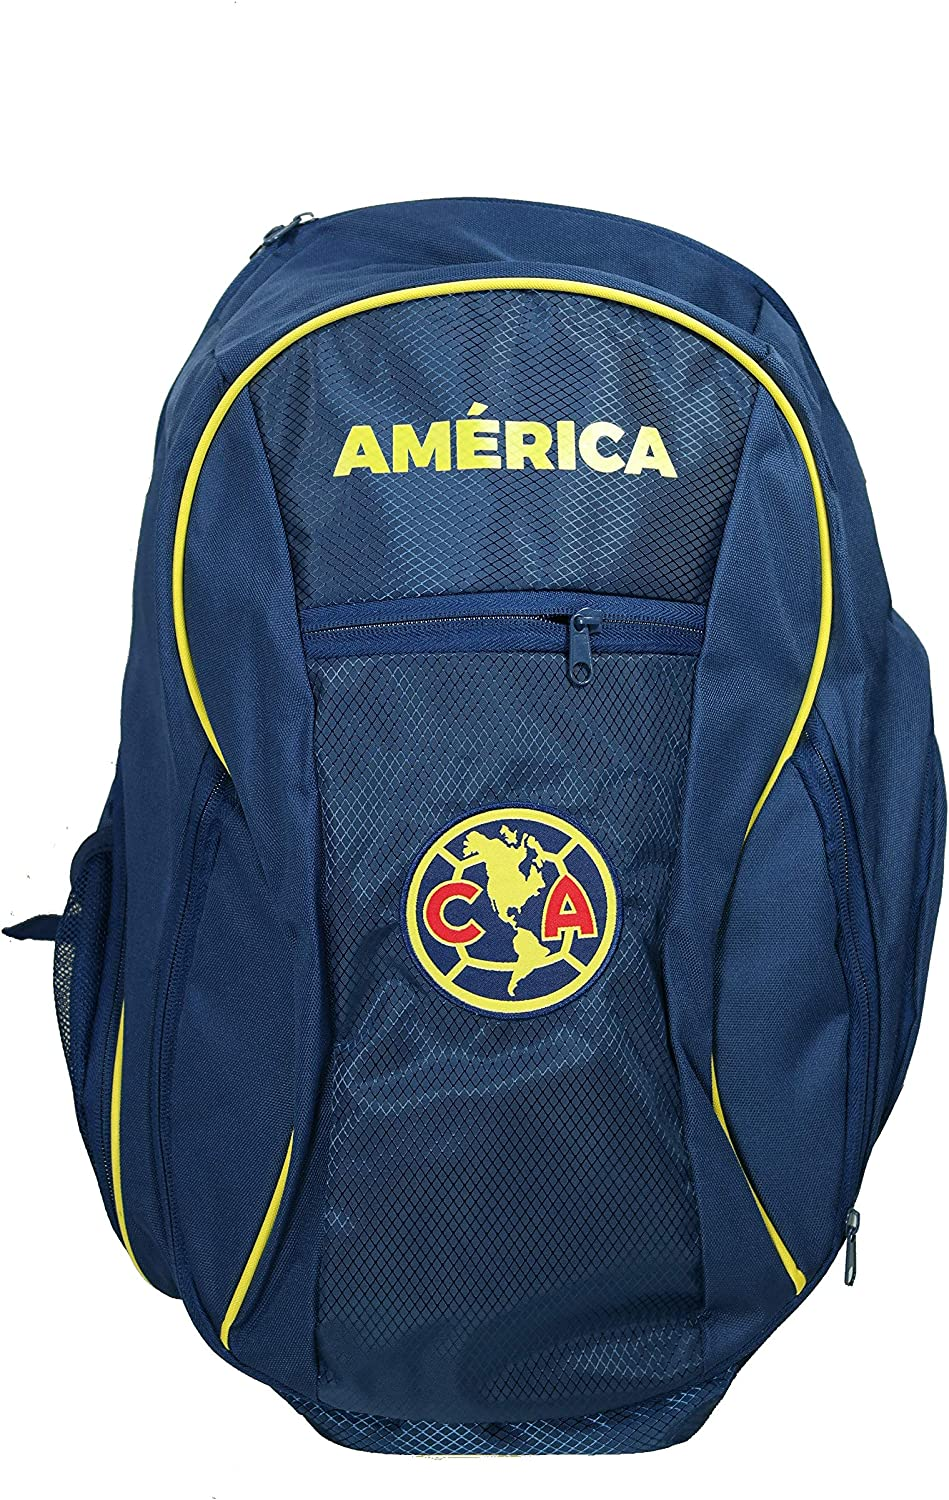 SALENEW very popular Club America Authentic Official Soccer Licensed Max 72% OFF Product Backpack